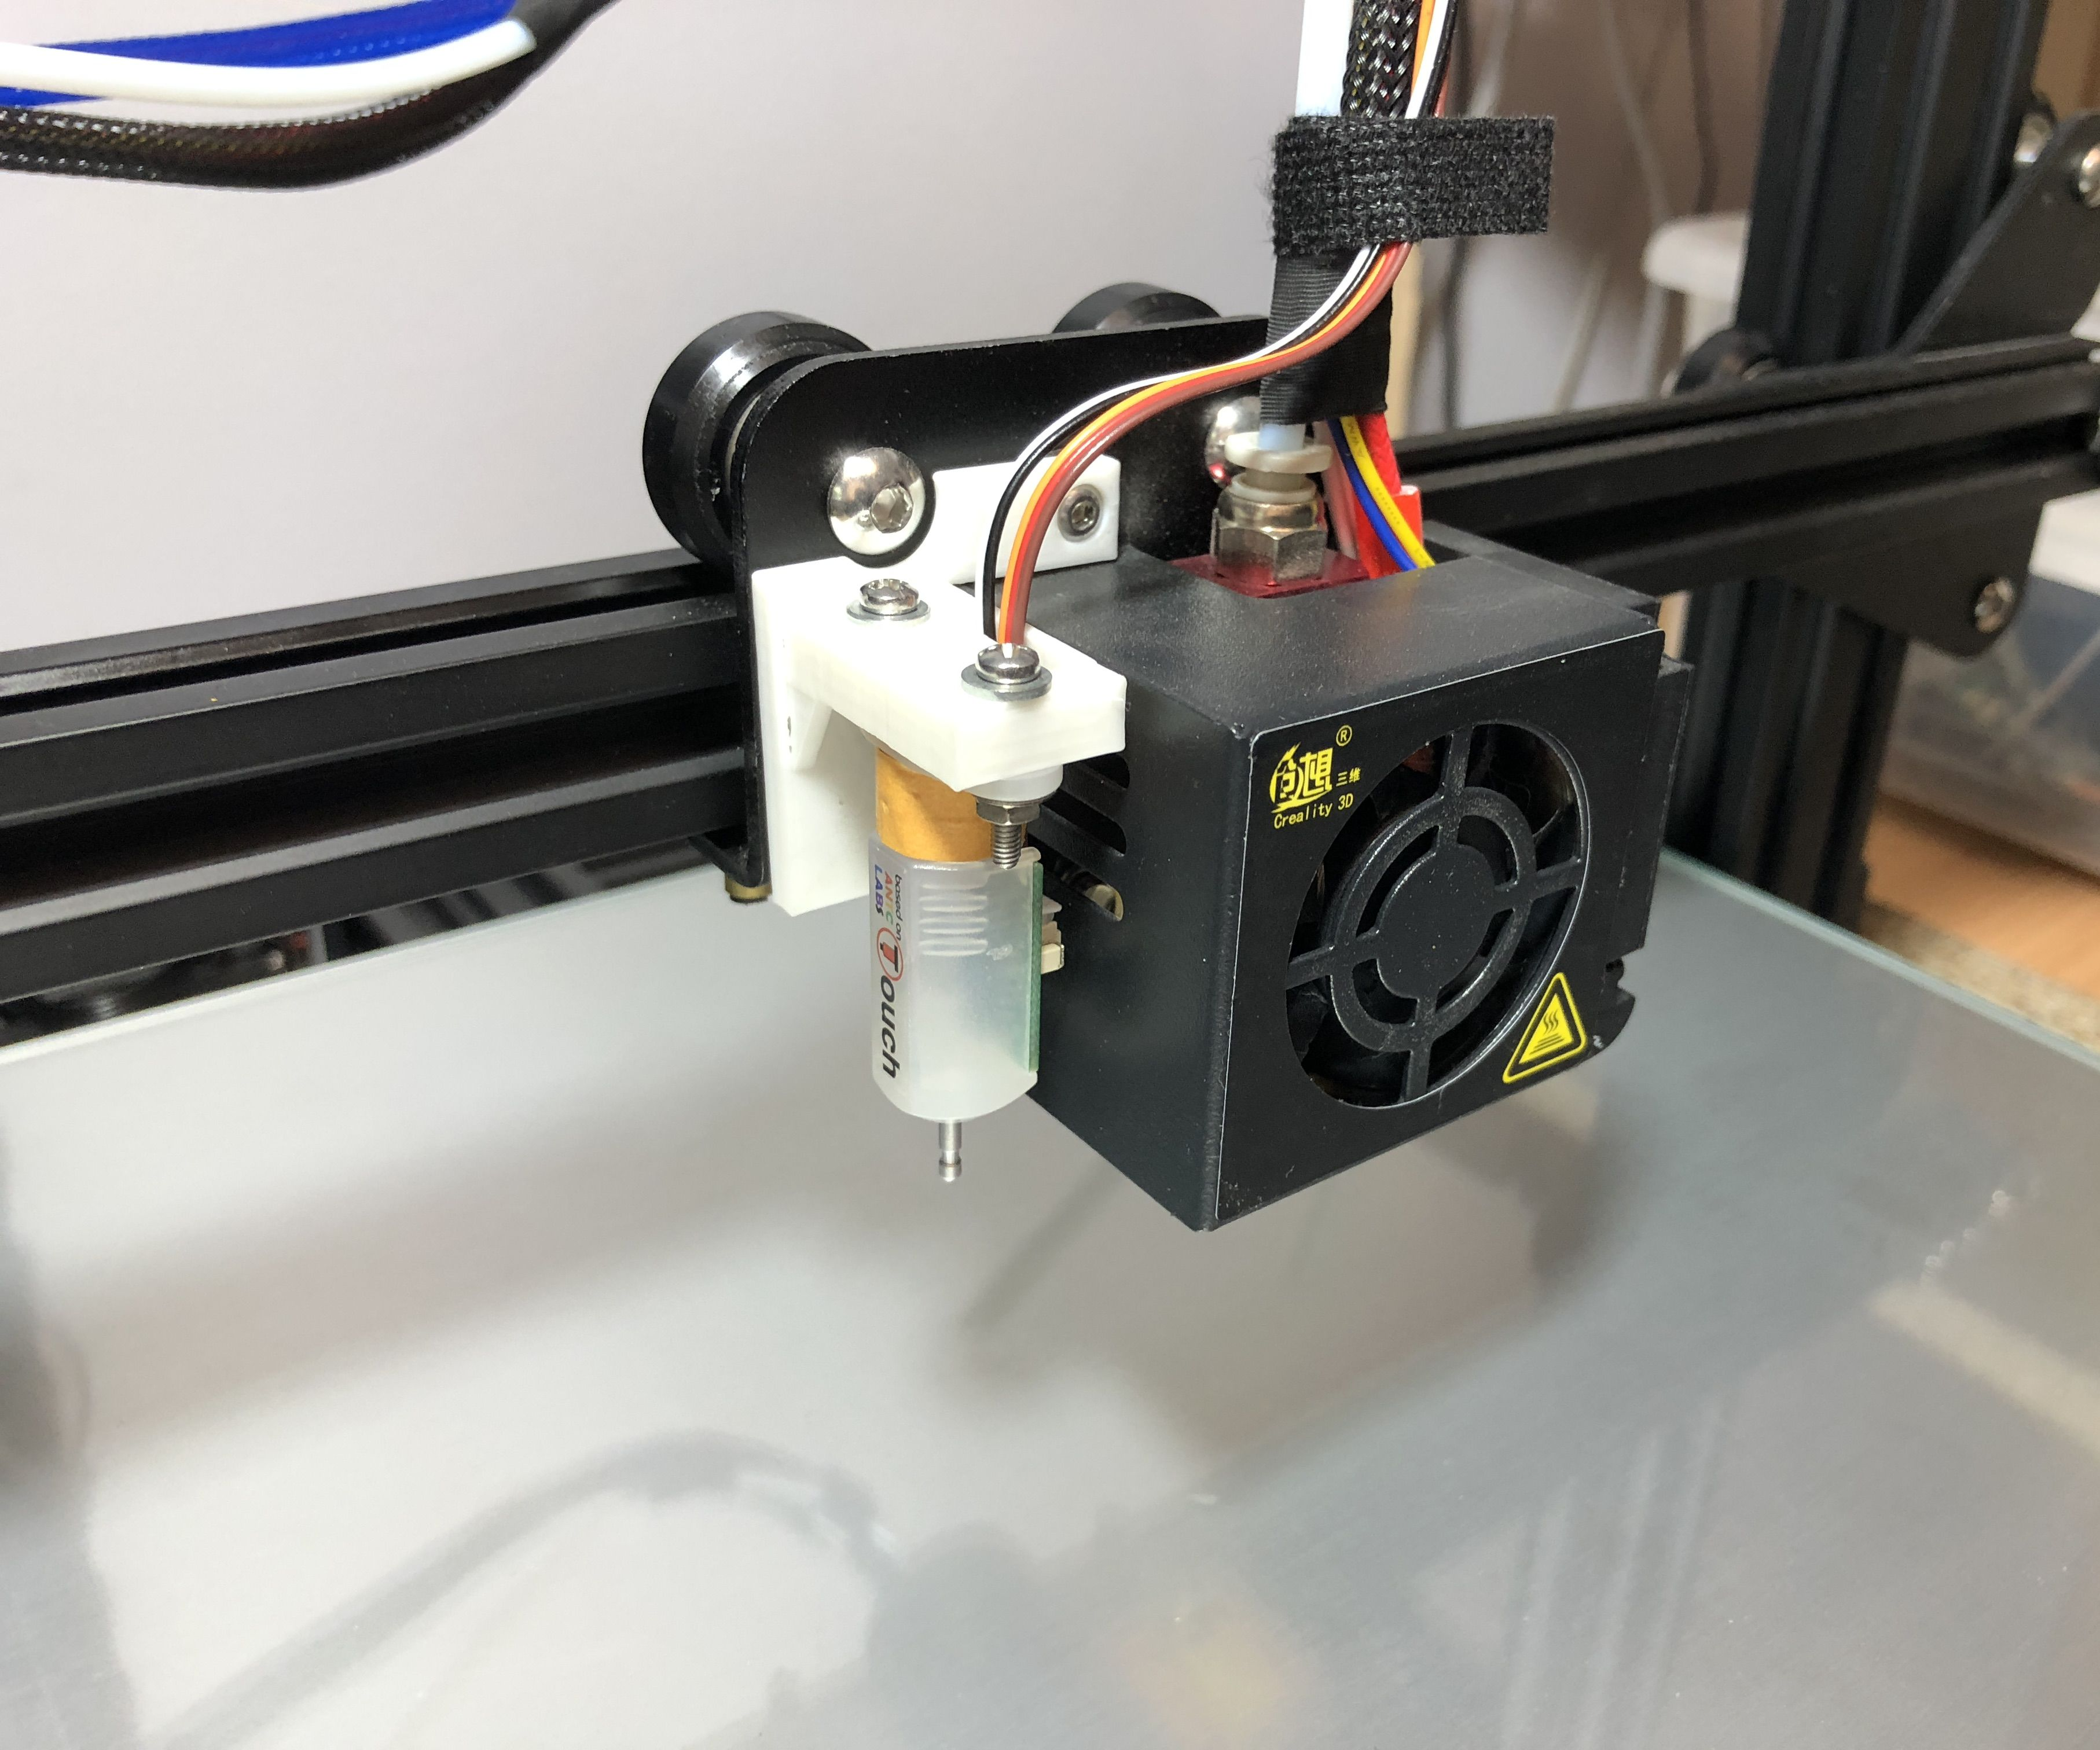 Installing BLTouch Auto Bed Leveling on the Creality CR-10 3D Printer